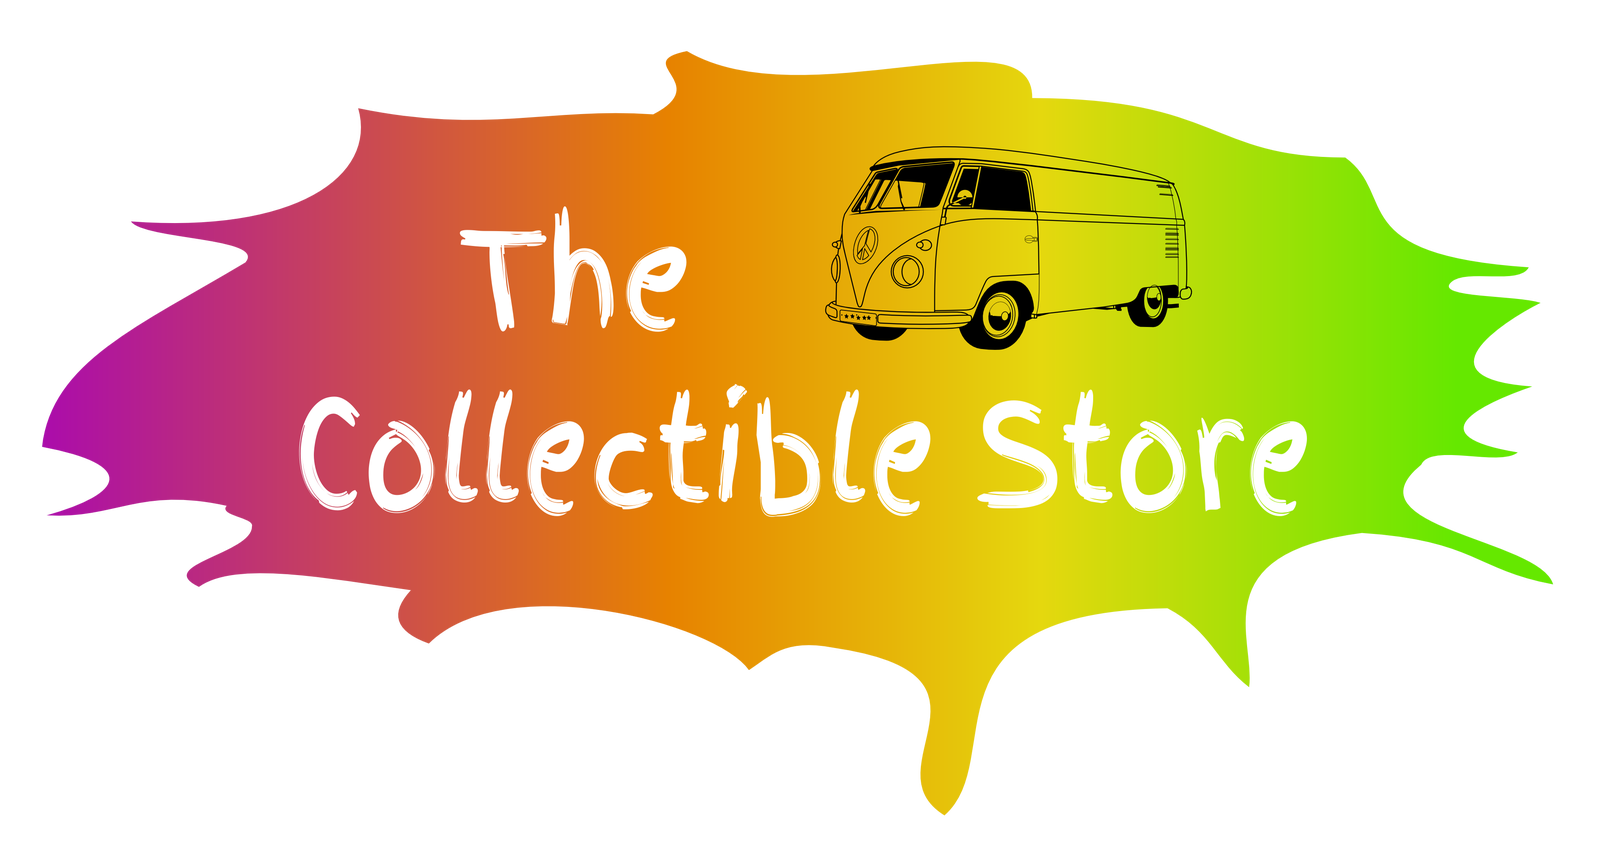 The Collectible Store